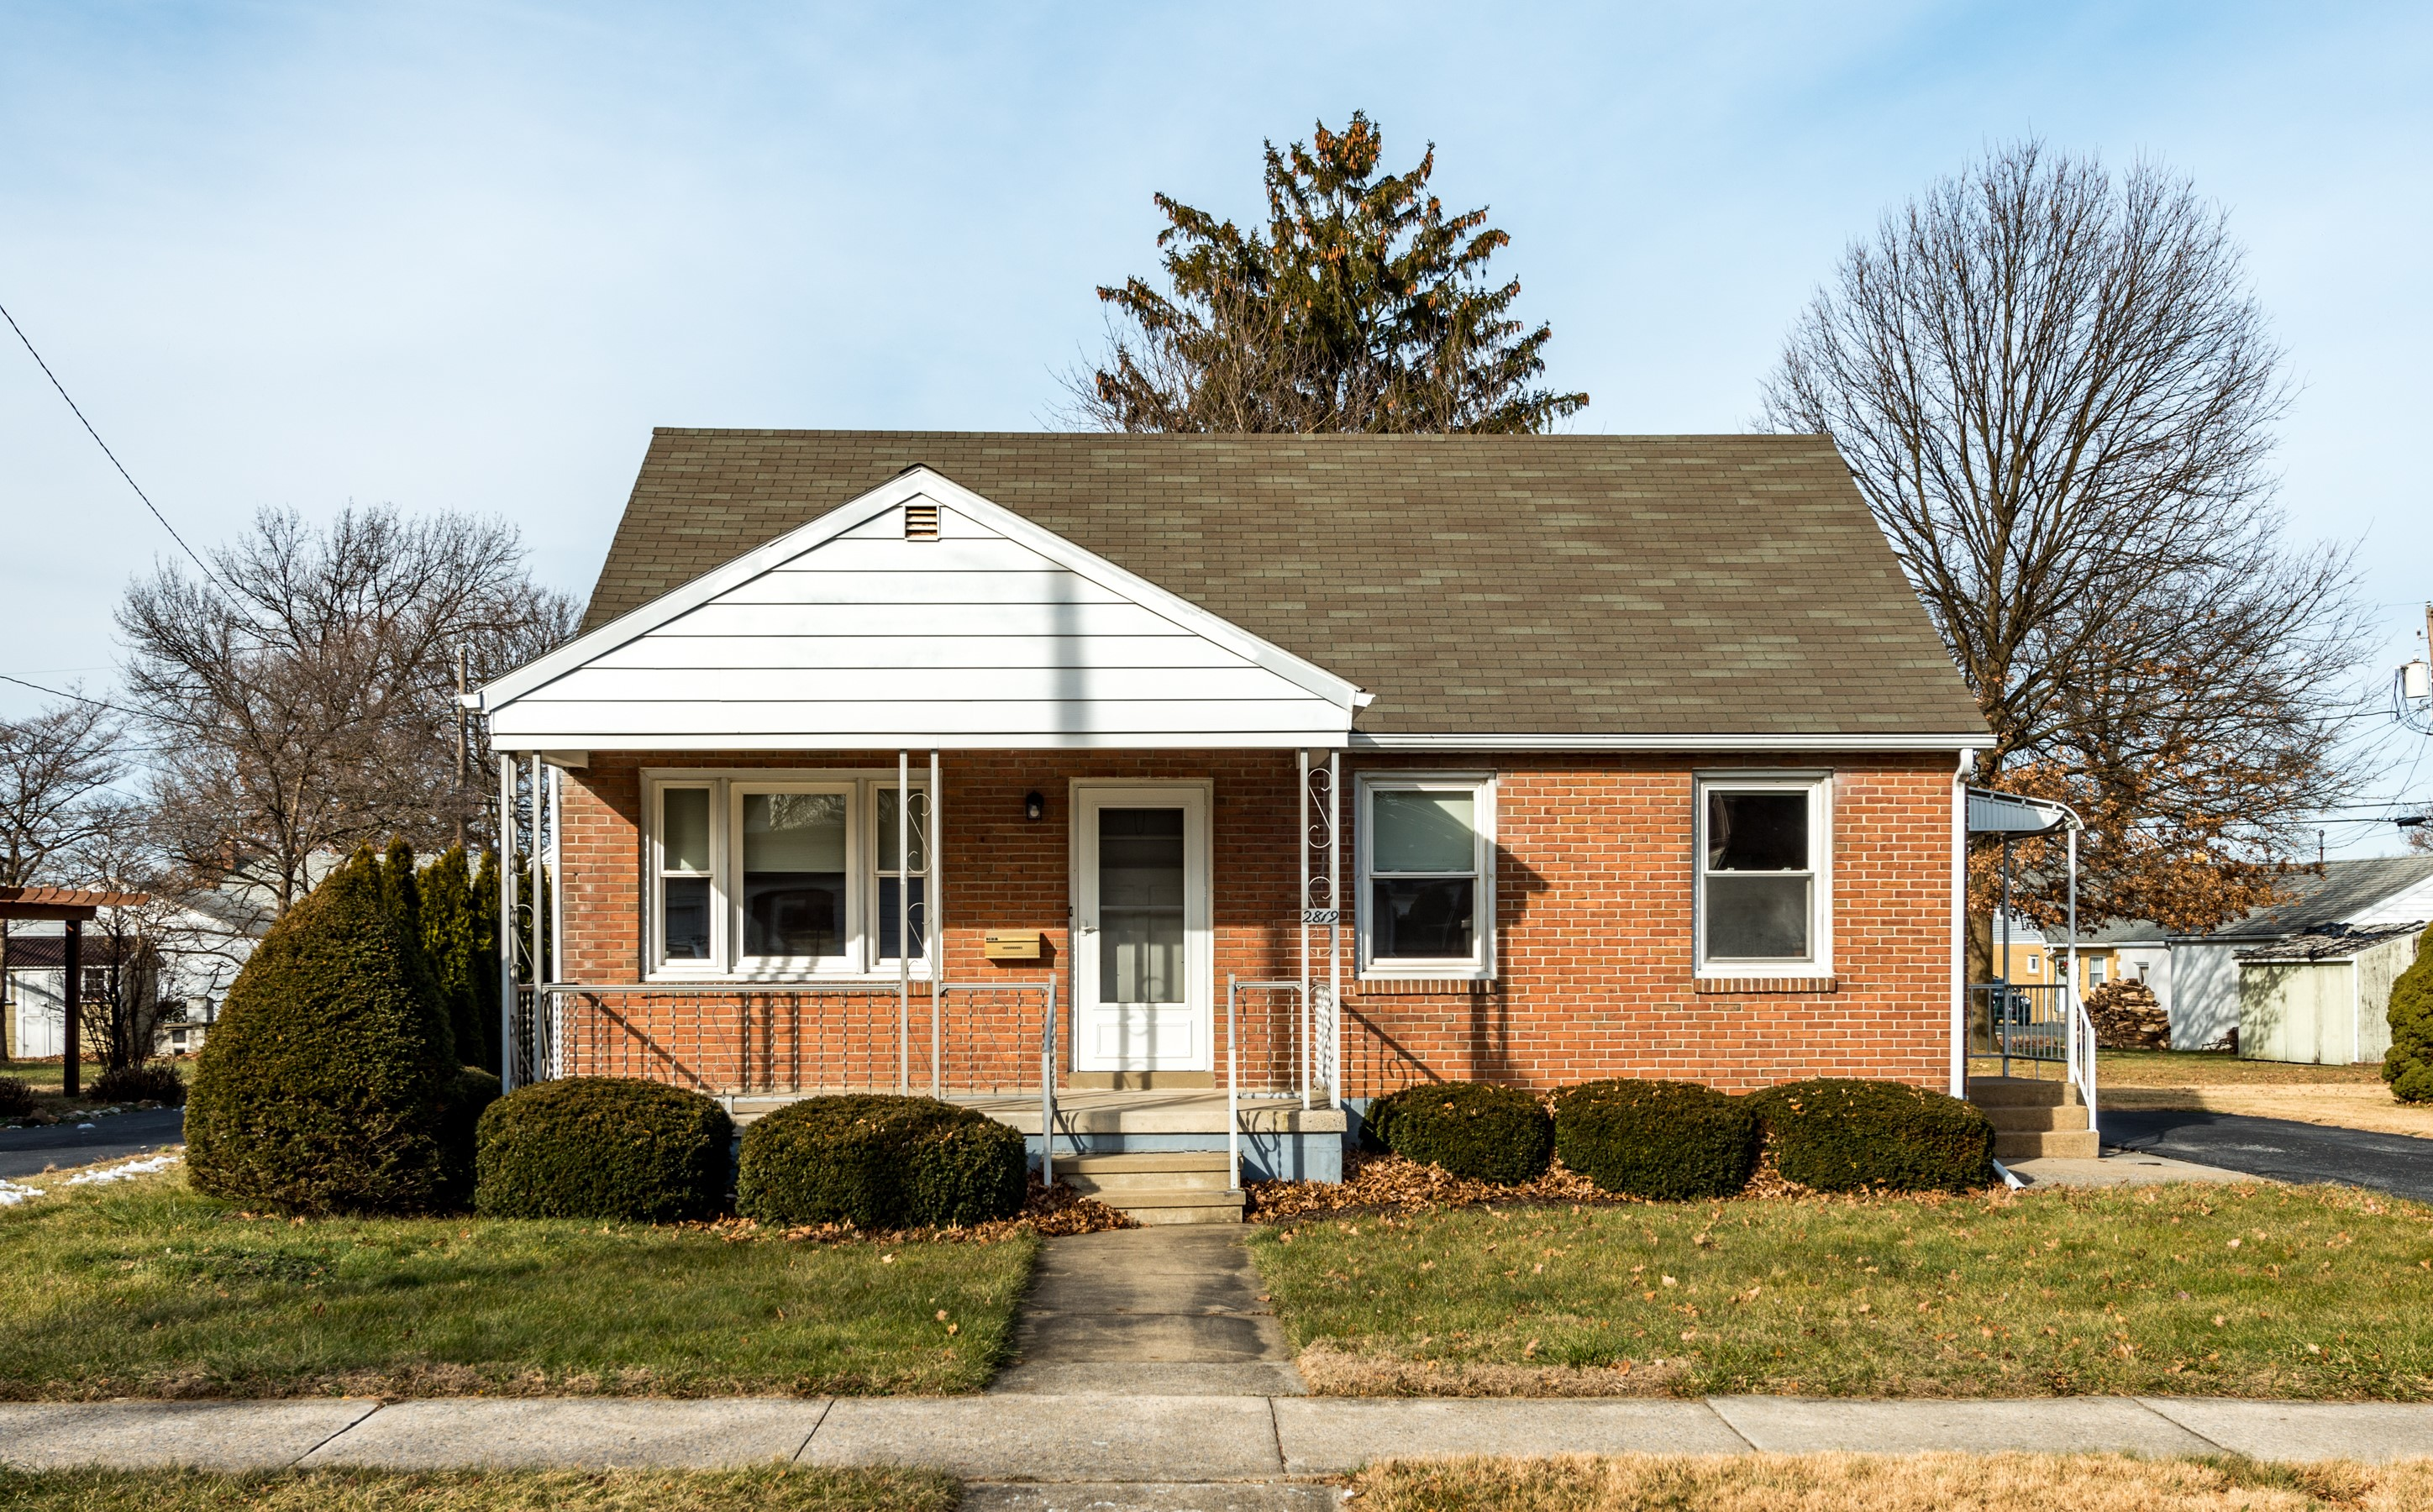 2819 Heister Blvd, West Lawn, PA 19609